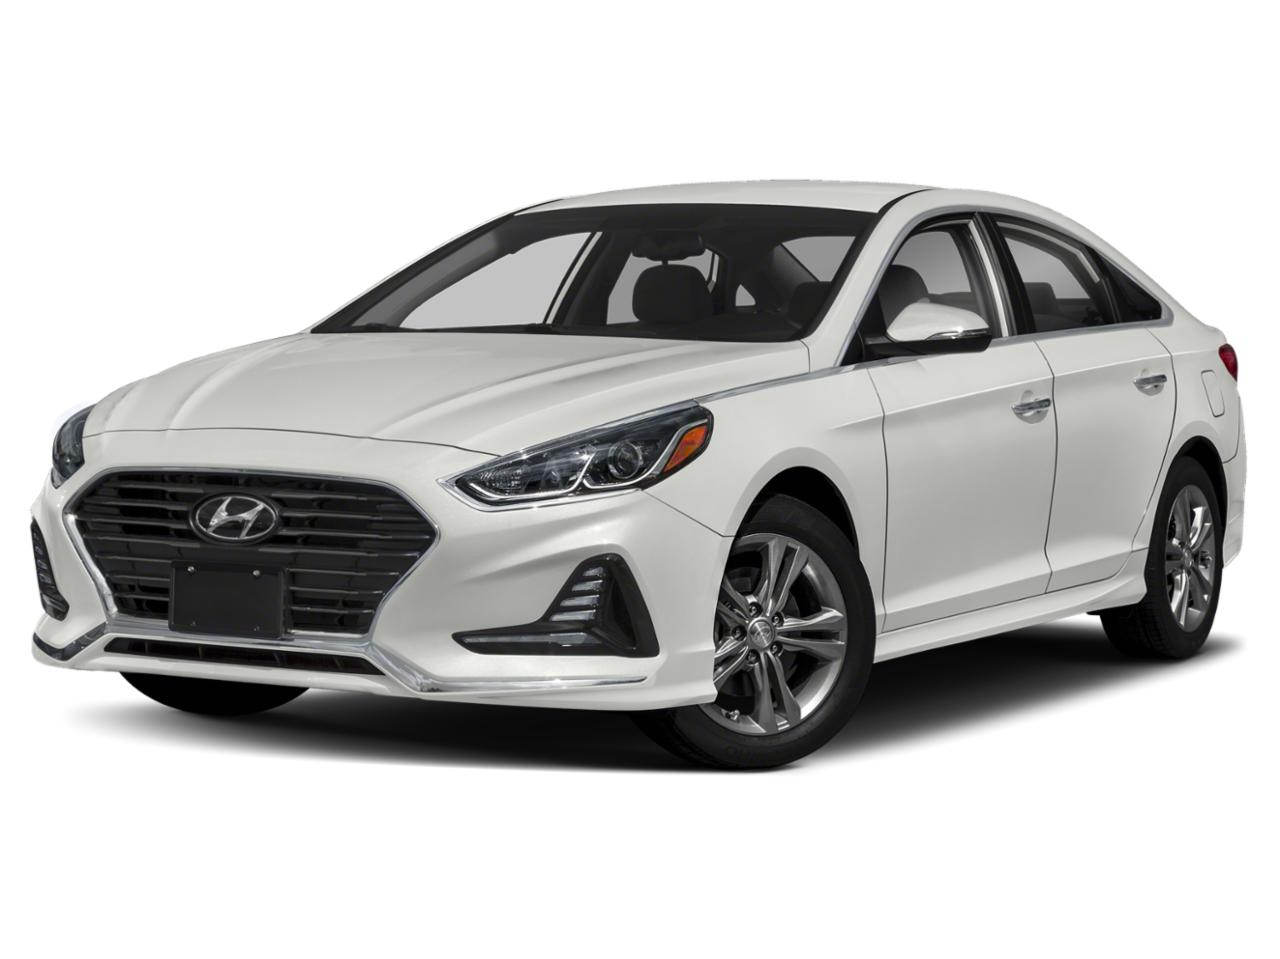 2018 Hyundai Sonata Vehicle Photo in Anchorage, AK 99515